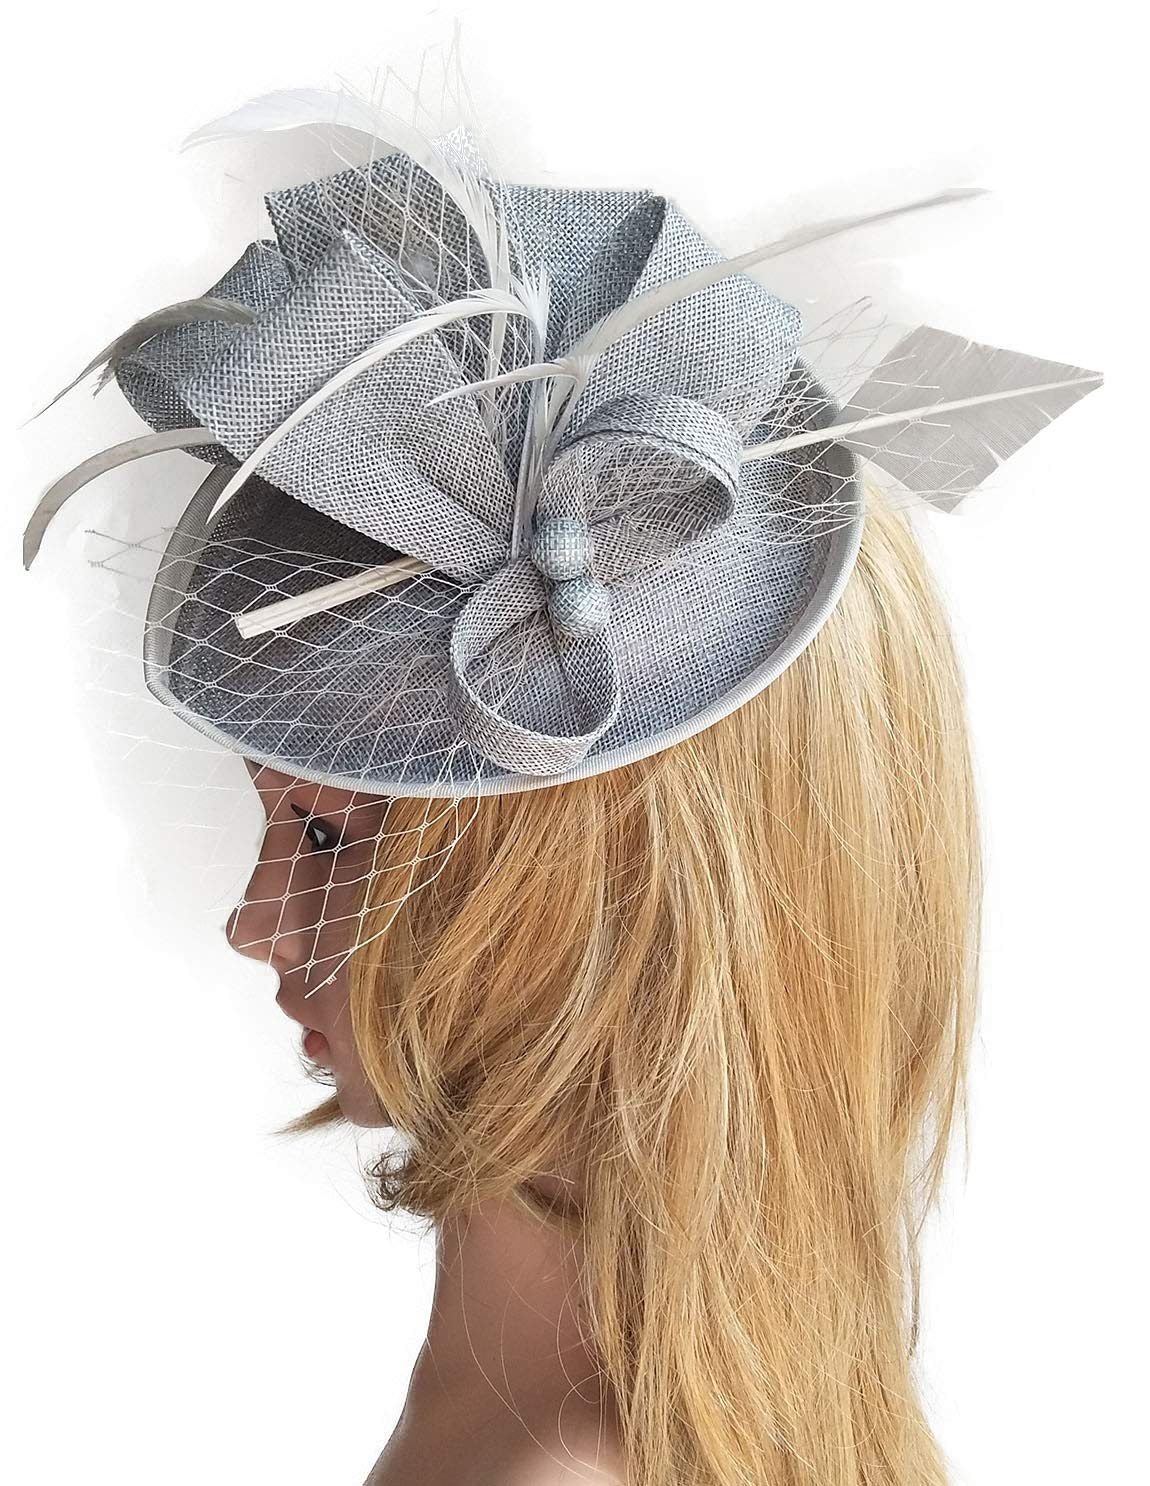 Biruil Fascinators Sinamay Feather Womens Pillbox Flower Derby Cocktail Tea Party Hat (Grey)